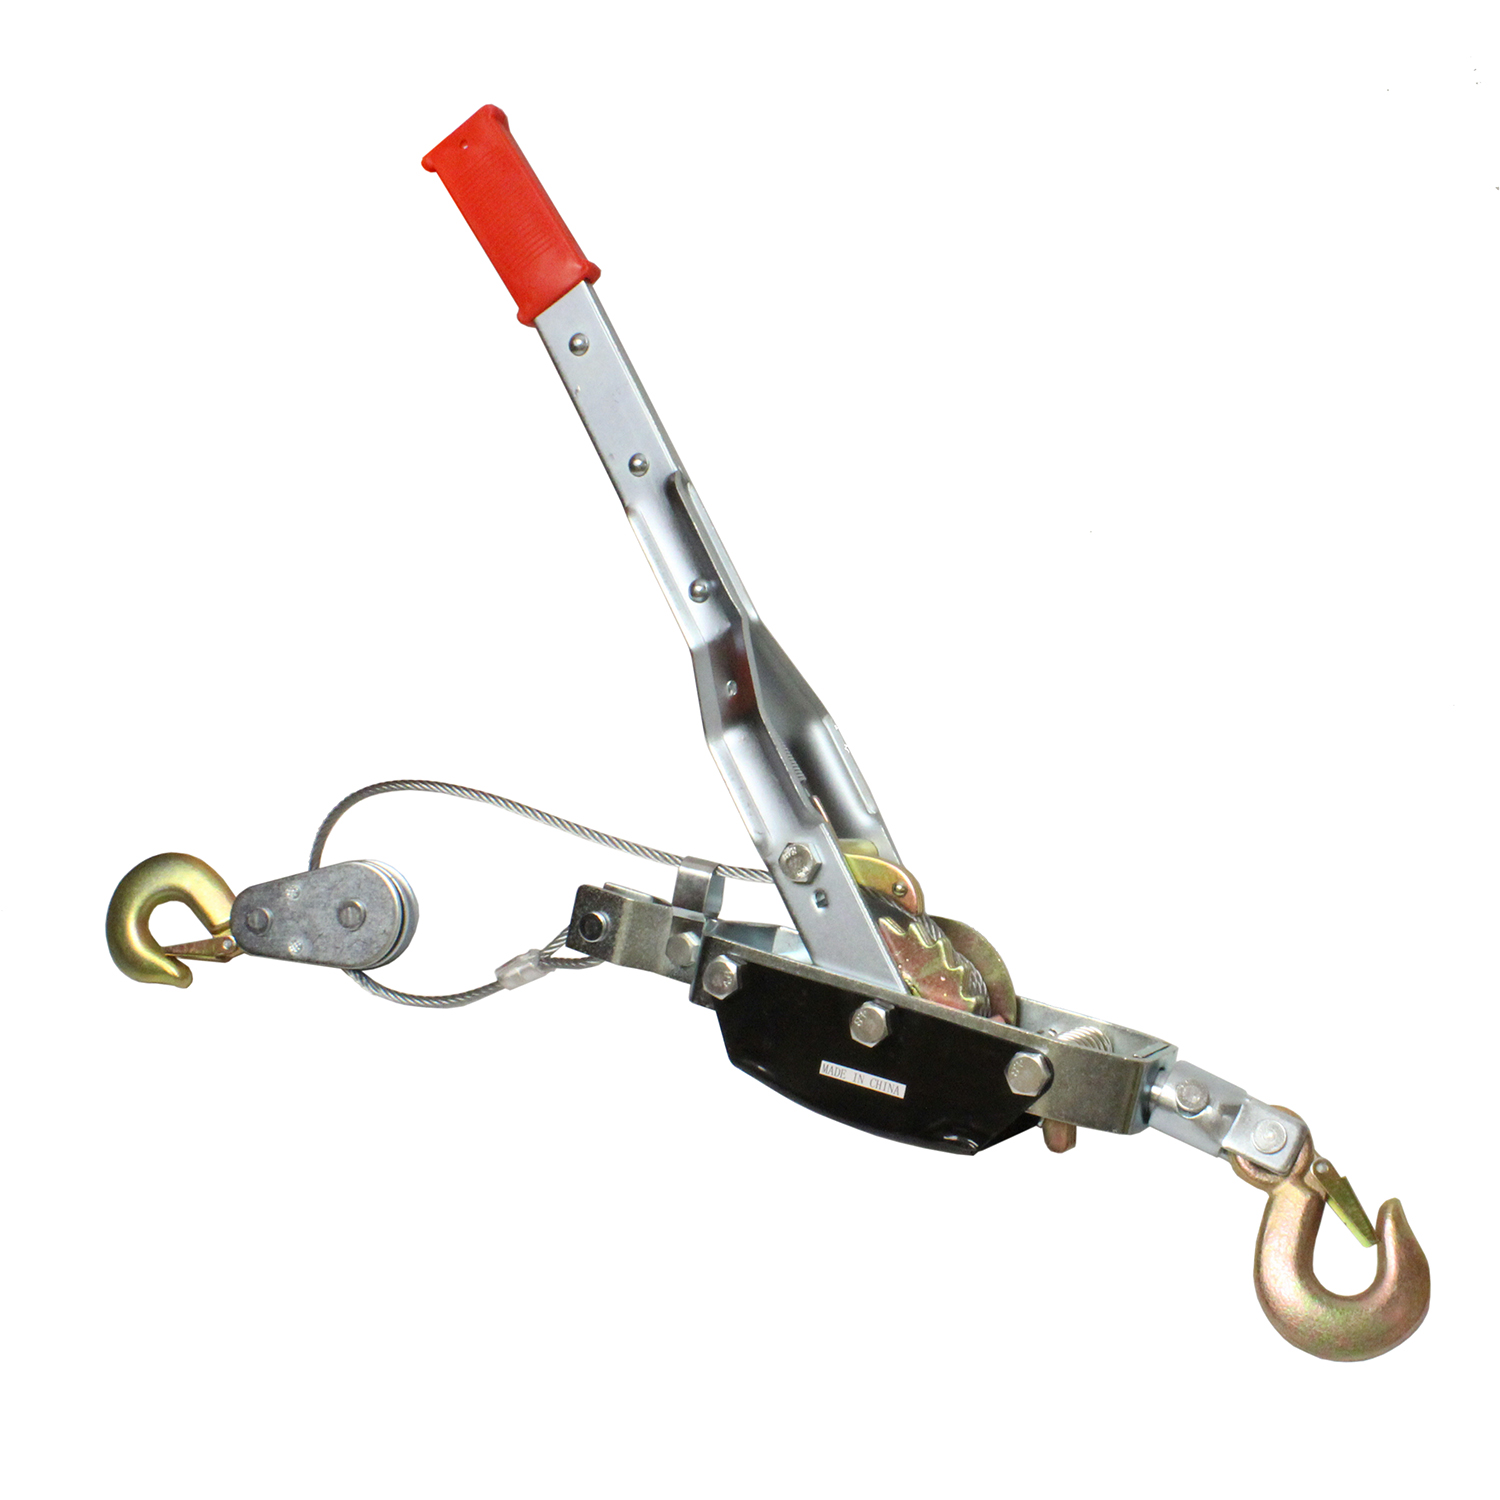 Abn Heavy Duty Hand Puller With Cable Rope And Hooks Come